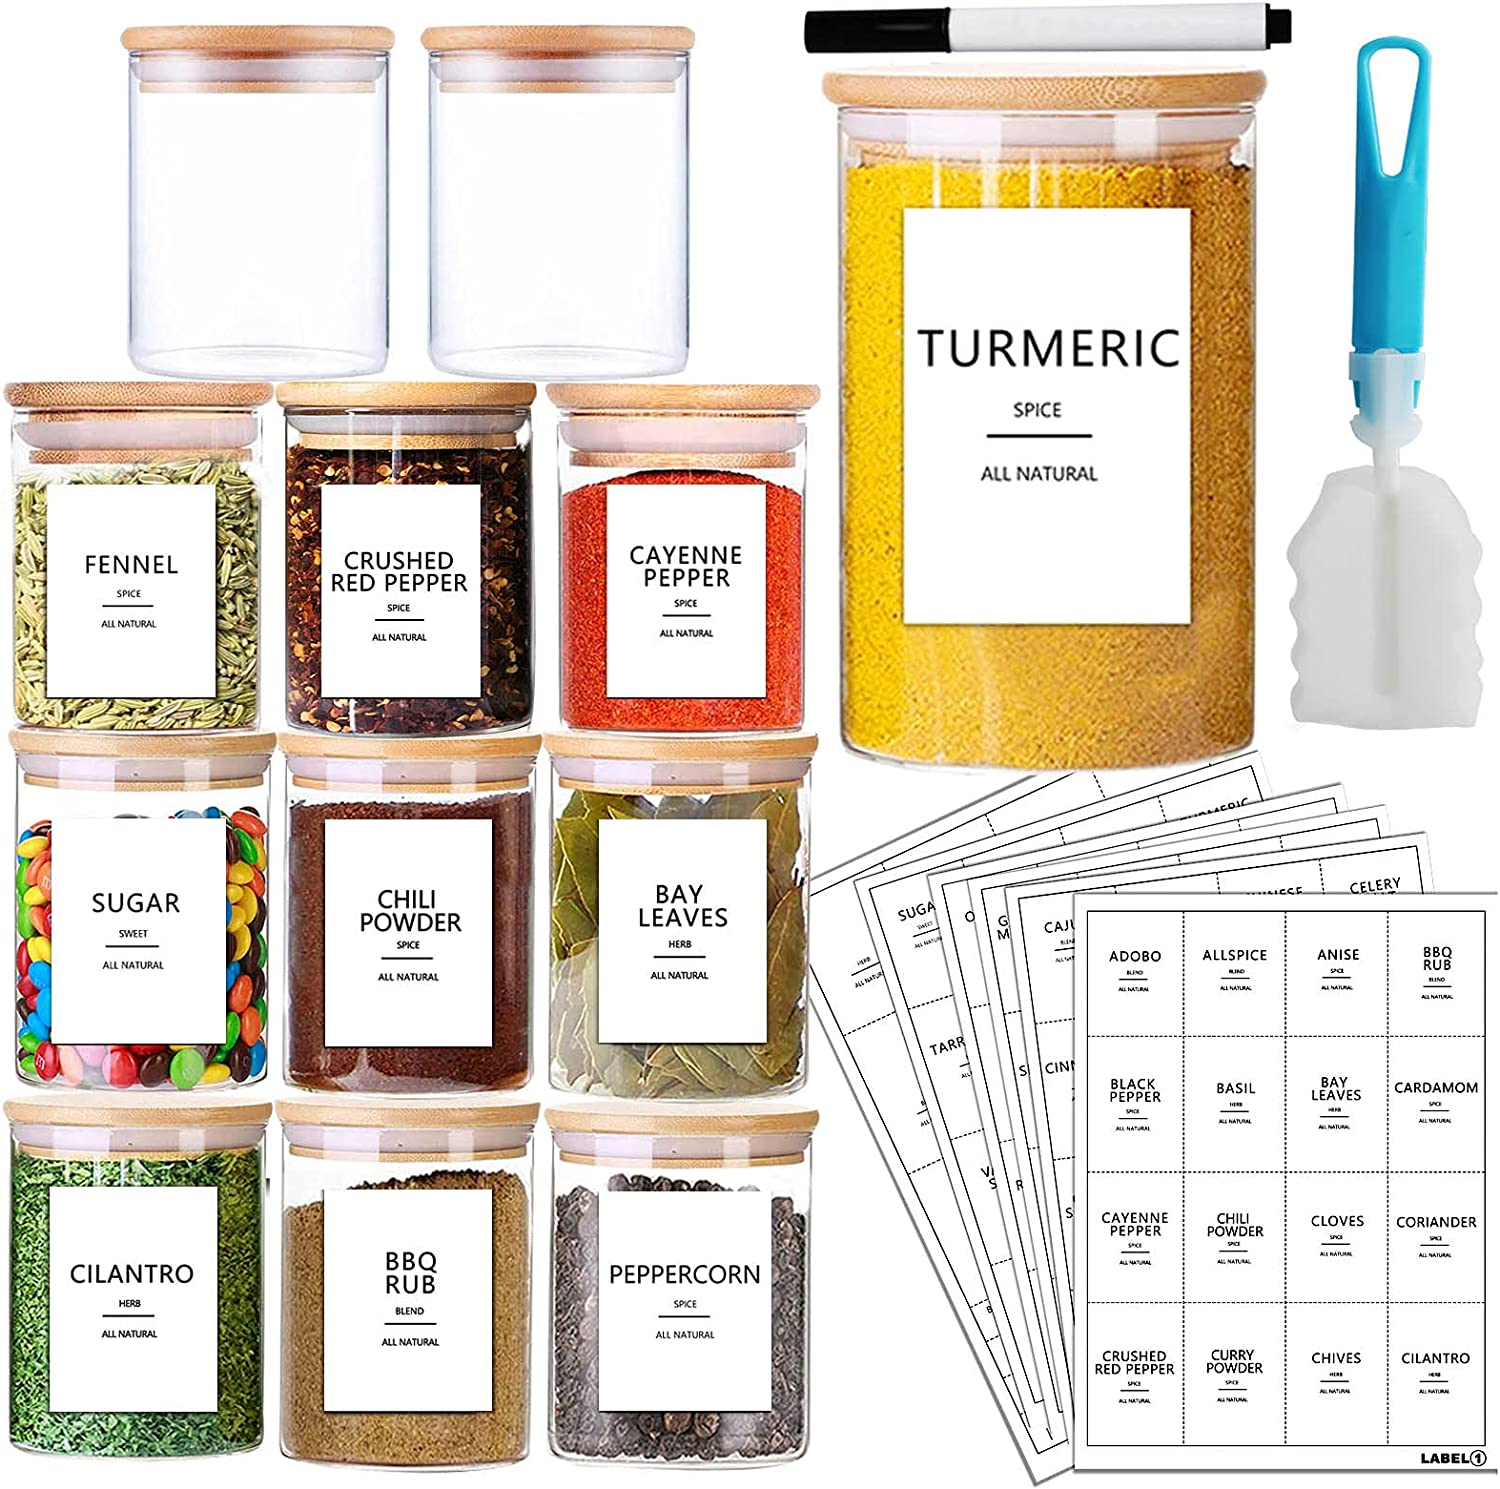 AISIPRIN 12 Pcs Glass Spice Jars with Bamboo Airtight Lids and 114 Labels - 9oz Small Food Storage Containers for Kitchen, Coffee, Herb - Marker and Brush Included